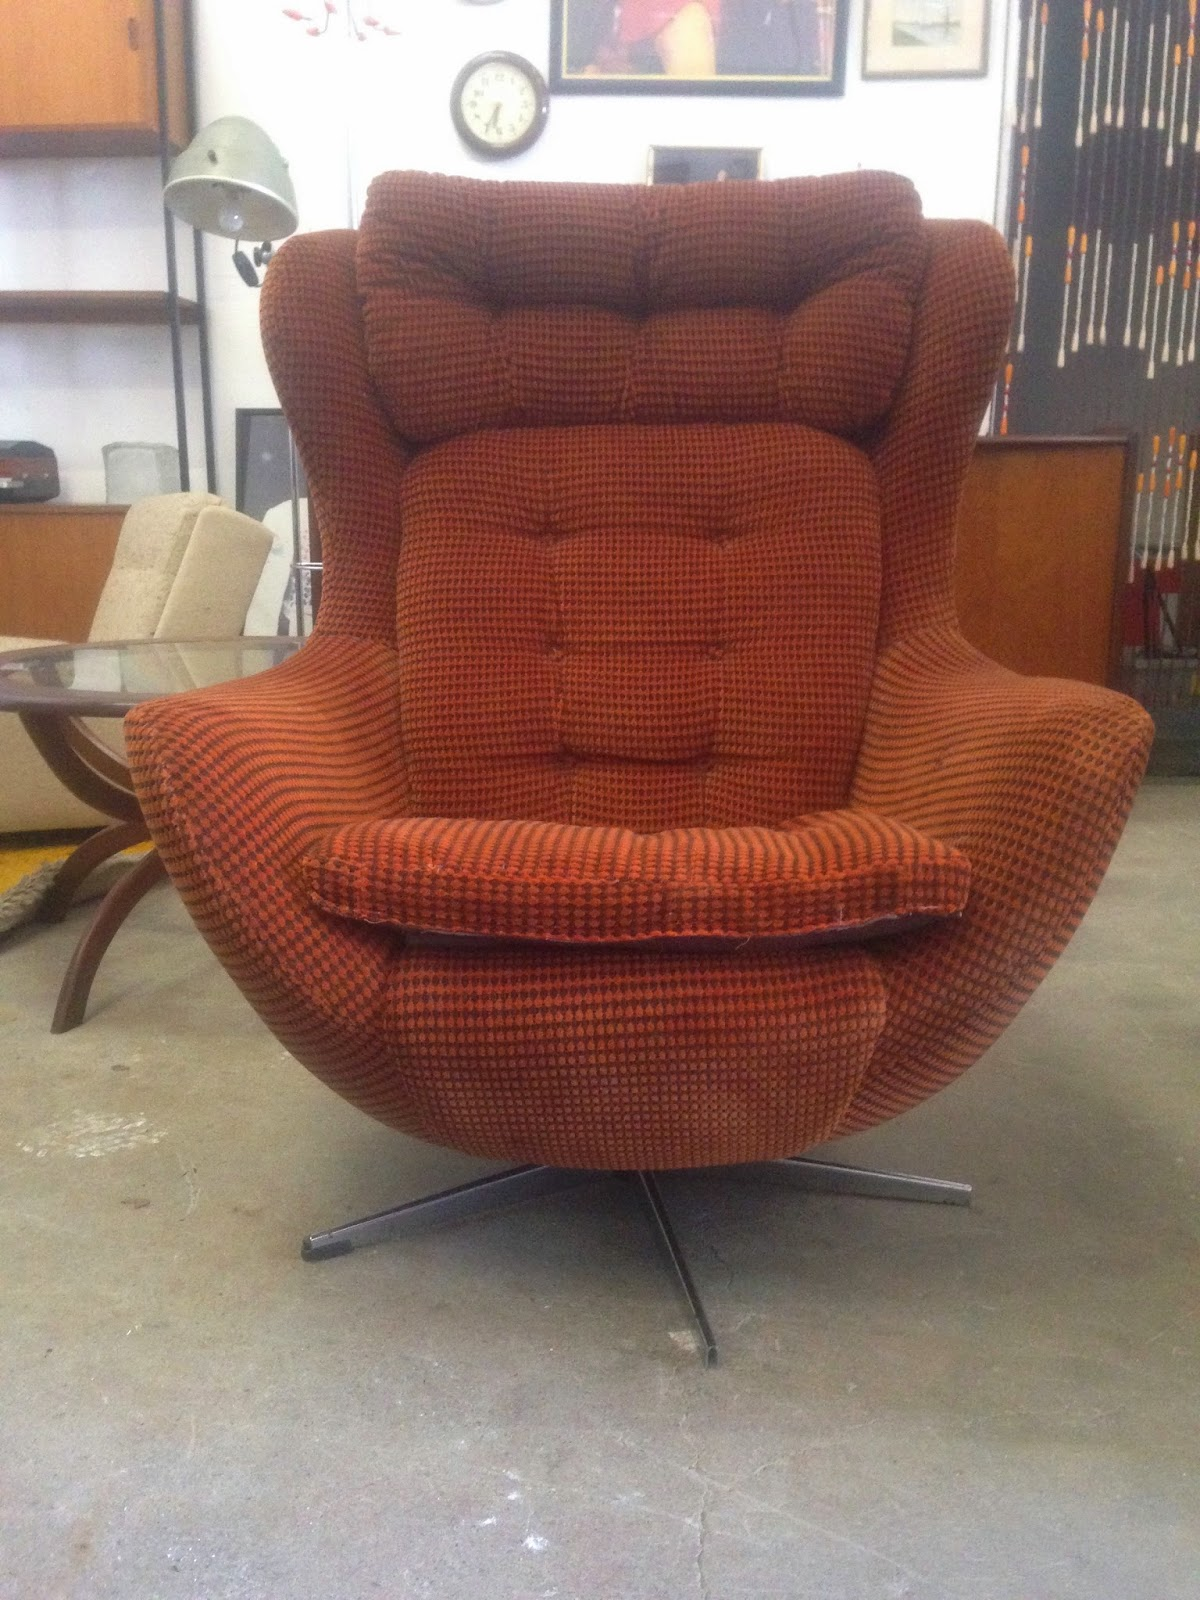 Merveilleux OCD   Vintage Furniture Ireland: Vintage Vono Egg Chair   Original  Compulsive Design